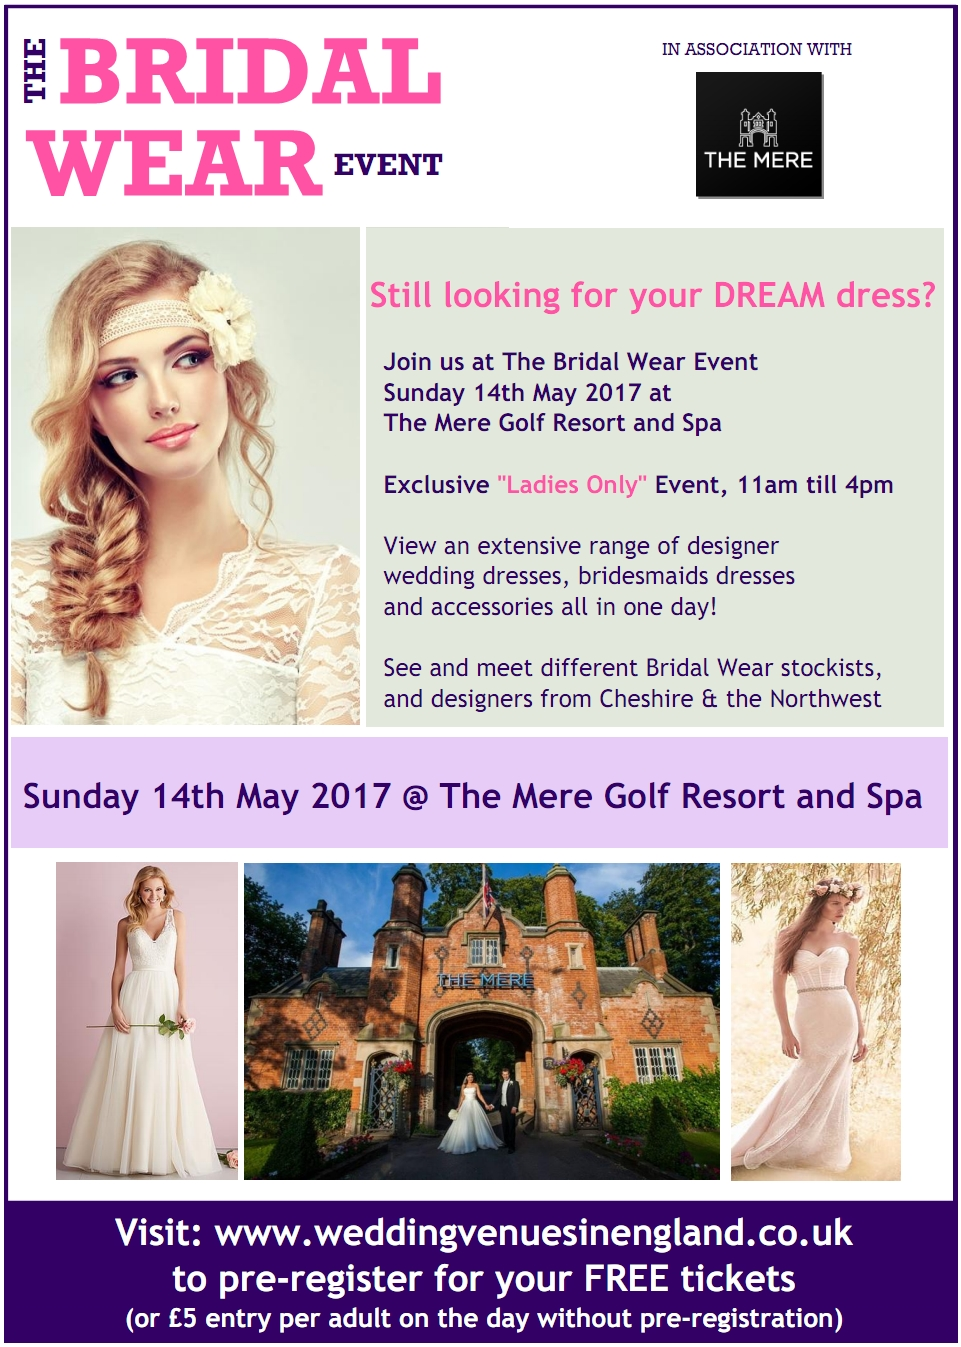 bridal wear event The Mere Resort